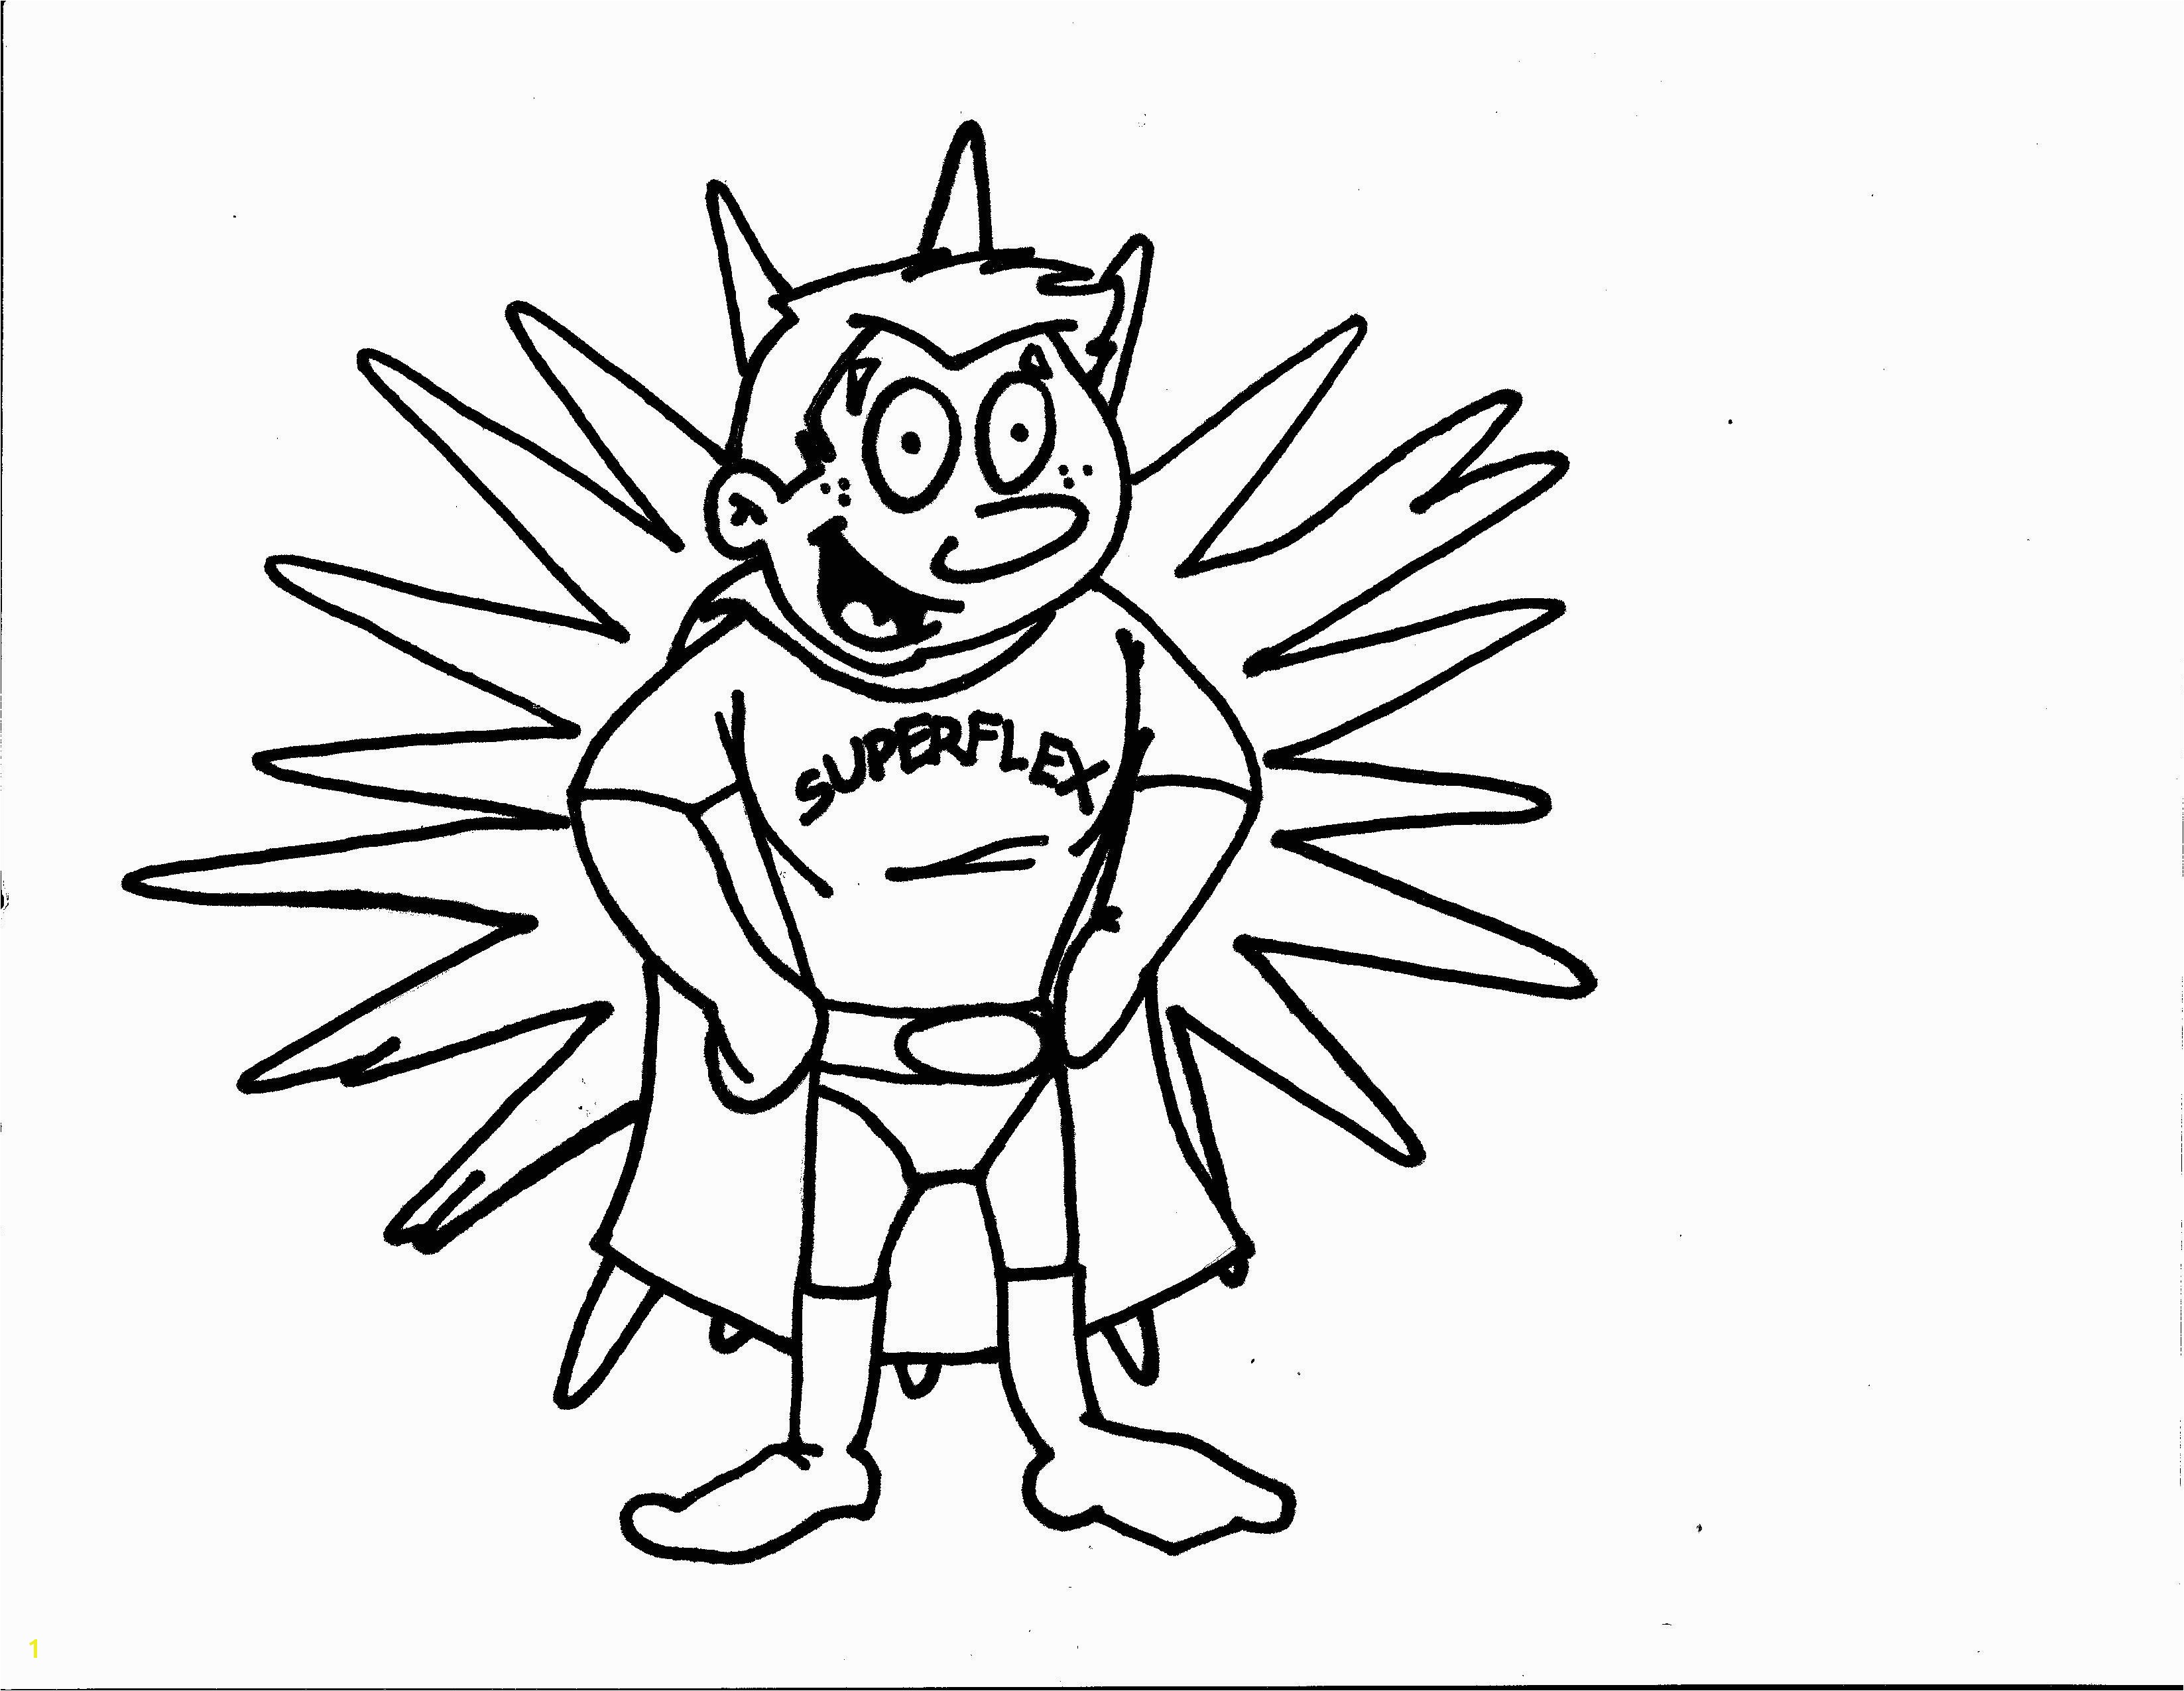 Superflex Coloring Page For each character Identify the Problem each Unthinkable Causes and the Strategies Superflex uses to defeat the Unthinkable